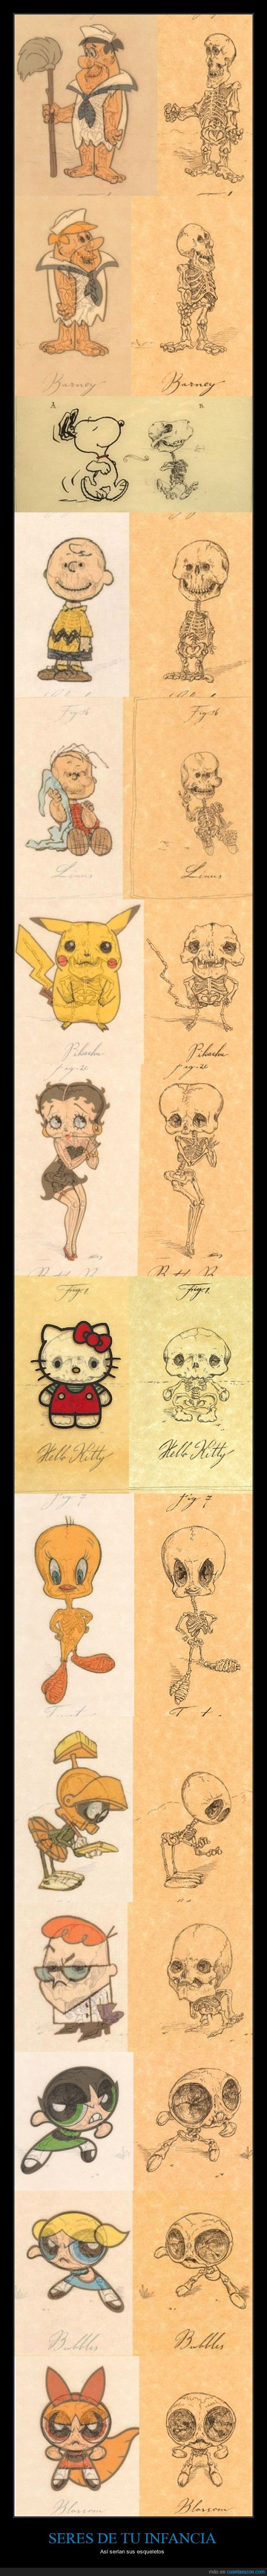 cuerpo,dexter,esqueleto,hello kitty,hueso,infancia,marvin,personaje,pikachu,snoopy,supernenas